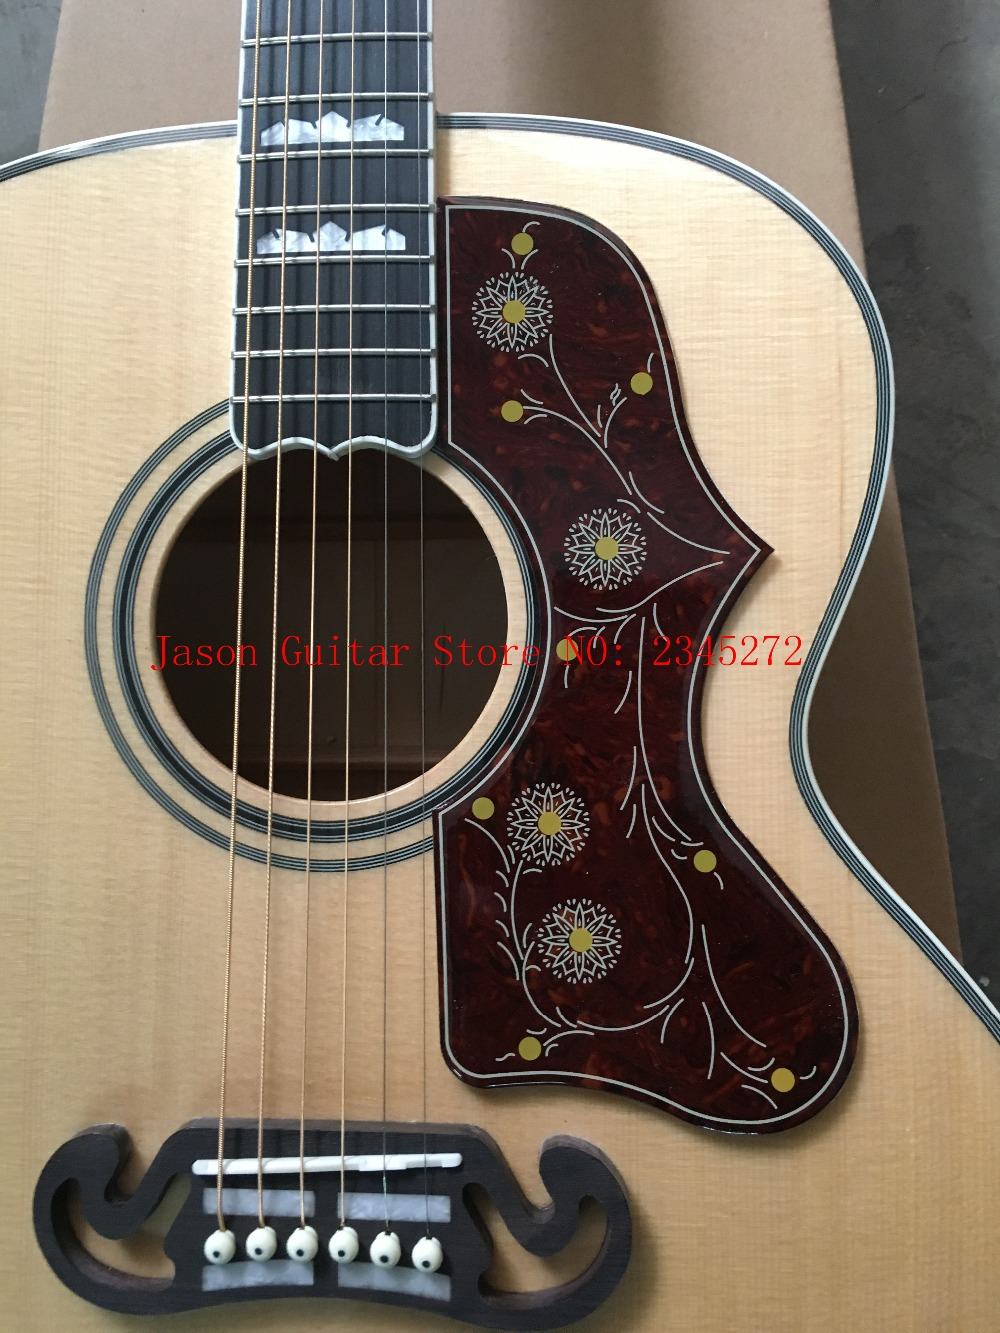 2018 New + Factory + Chibson J200 flame maple acoustic guitar J200 electric acoustic Deluxe guitar spruce top acoustic+customize 2017 new guitar factory all flame maple body chibson es 175 electric jazz guiar es175 semi hollow jazz guitar free shipping